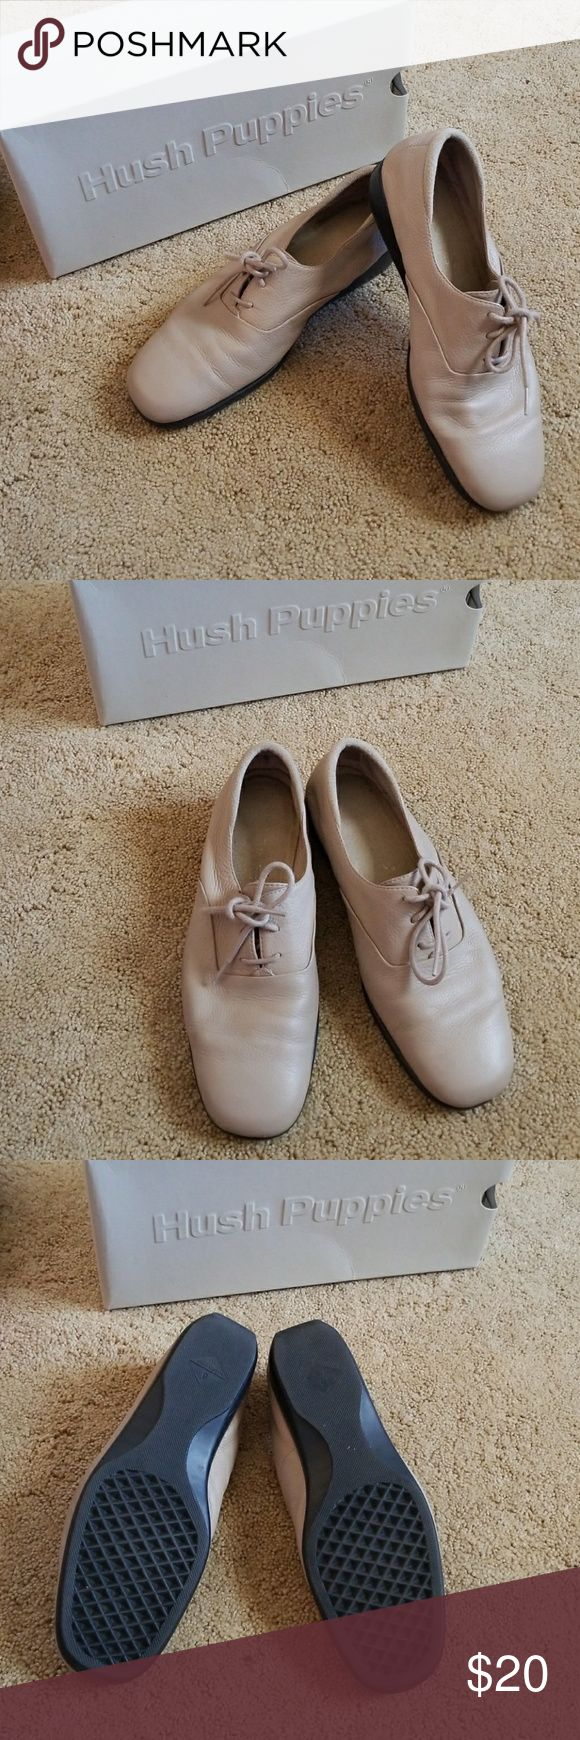 Hush puppies sneakers Rhapsody taupe sneakers that are previosuly well loved and taken care of shows of wear of crease on them in pictures but no rips, tares or scuffs Hush Puppies Shoes Sneakers